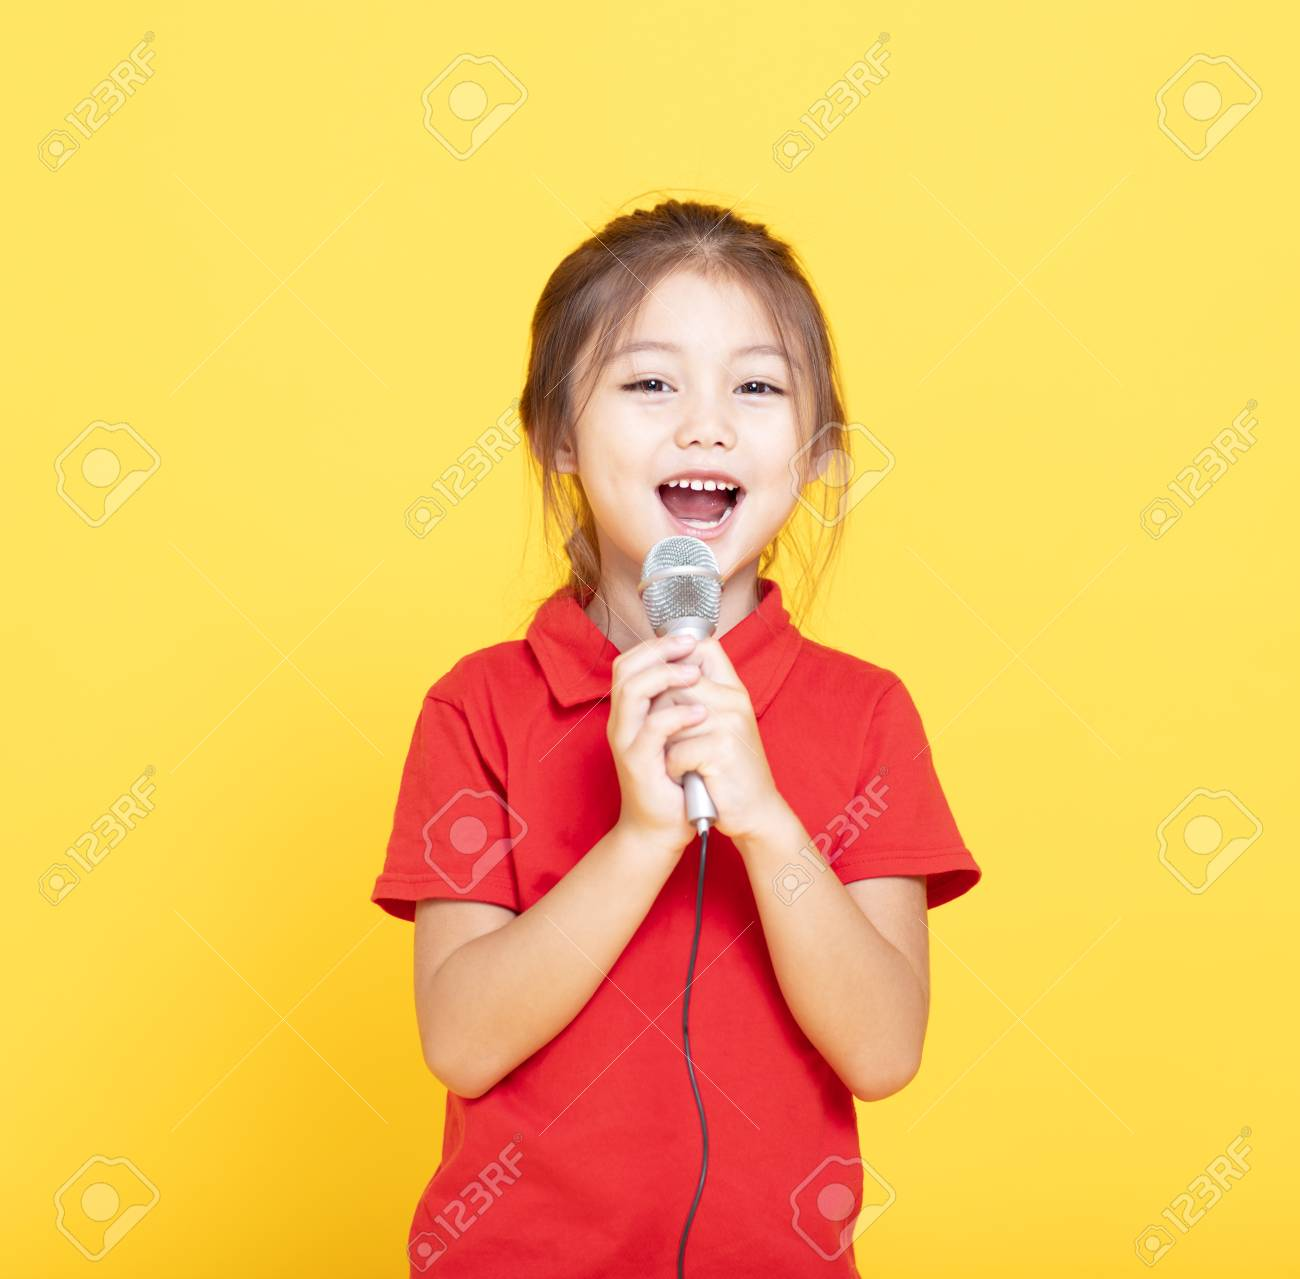 happy little girl singing on yellow background - 107762326